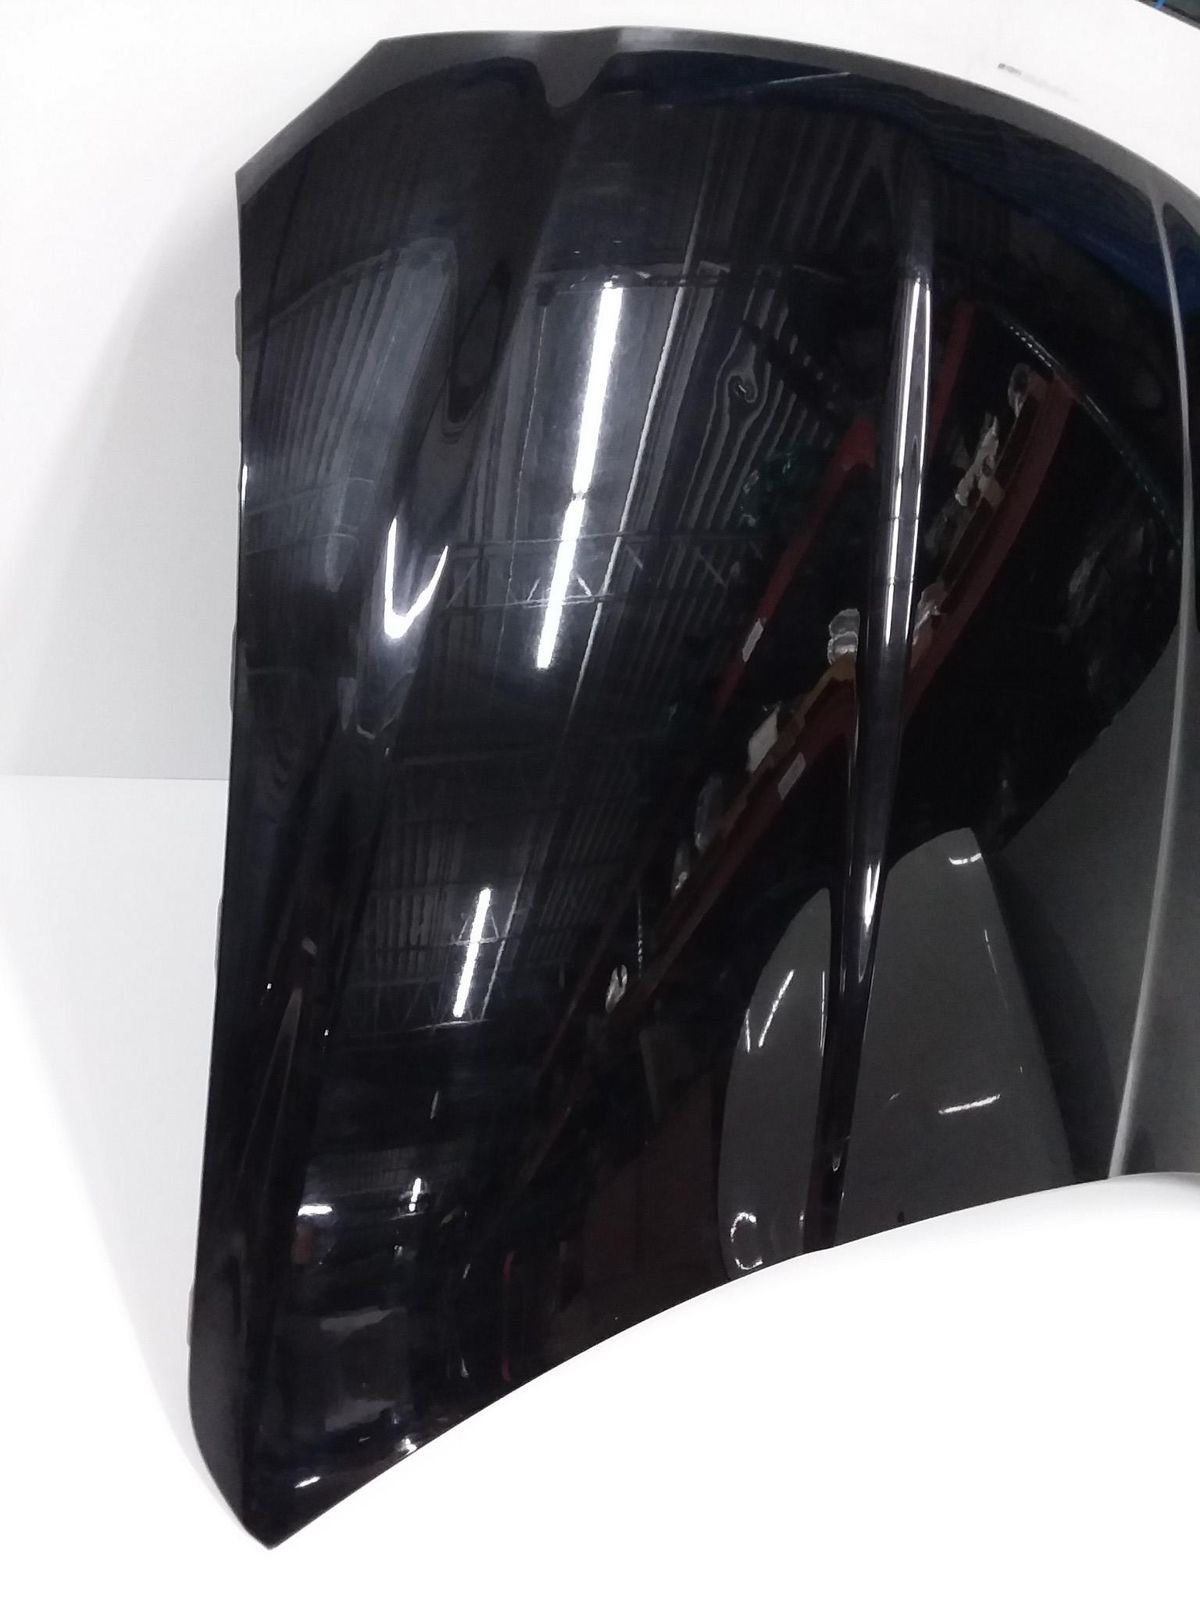 2016 - 2017 JAGUAR XF HOOD BONNET USED OEM